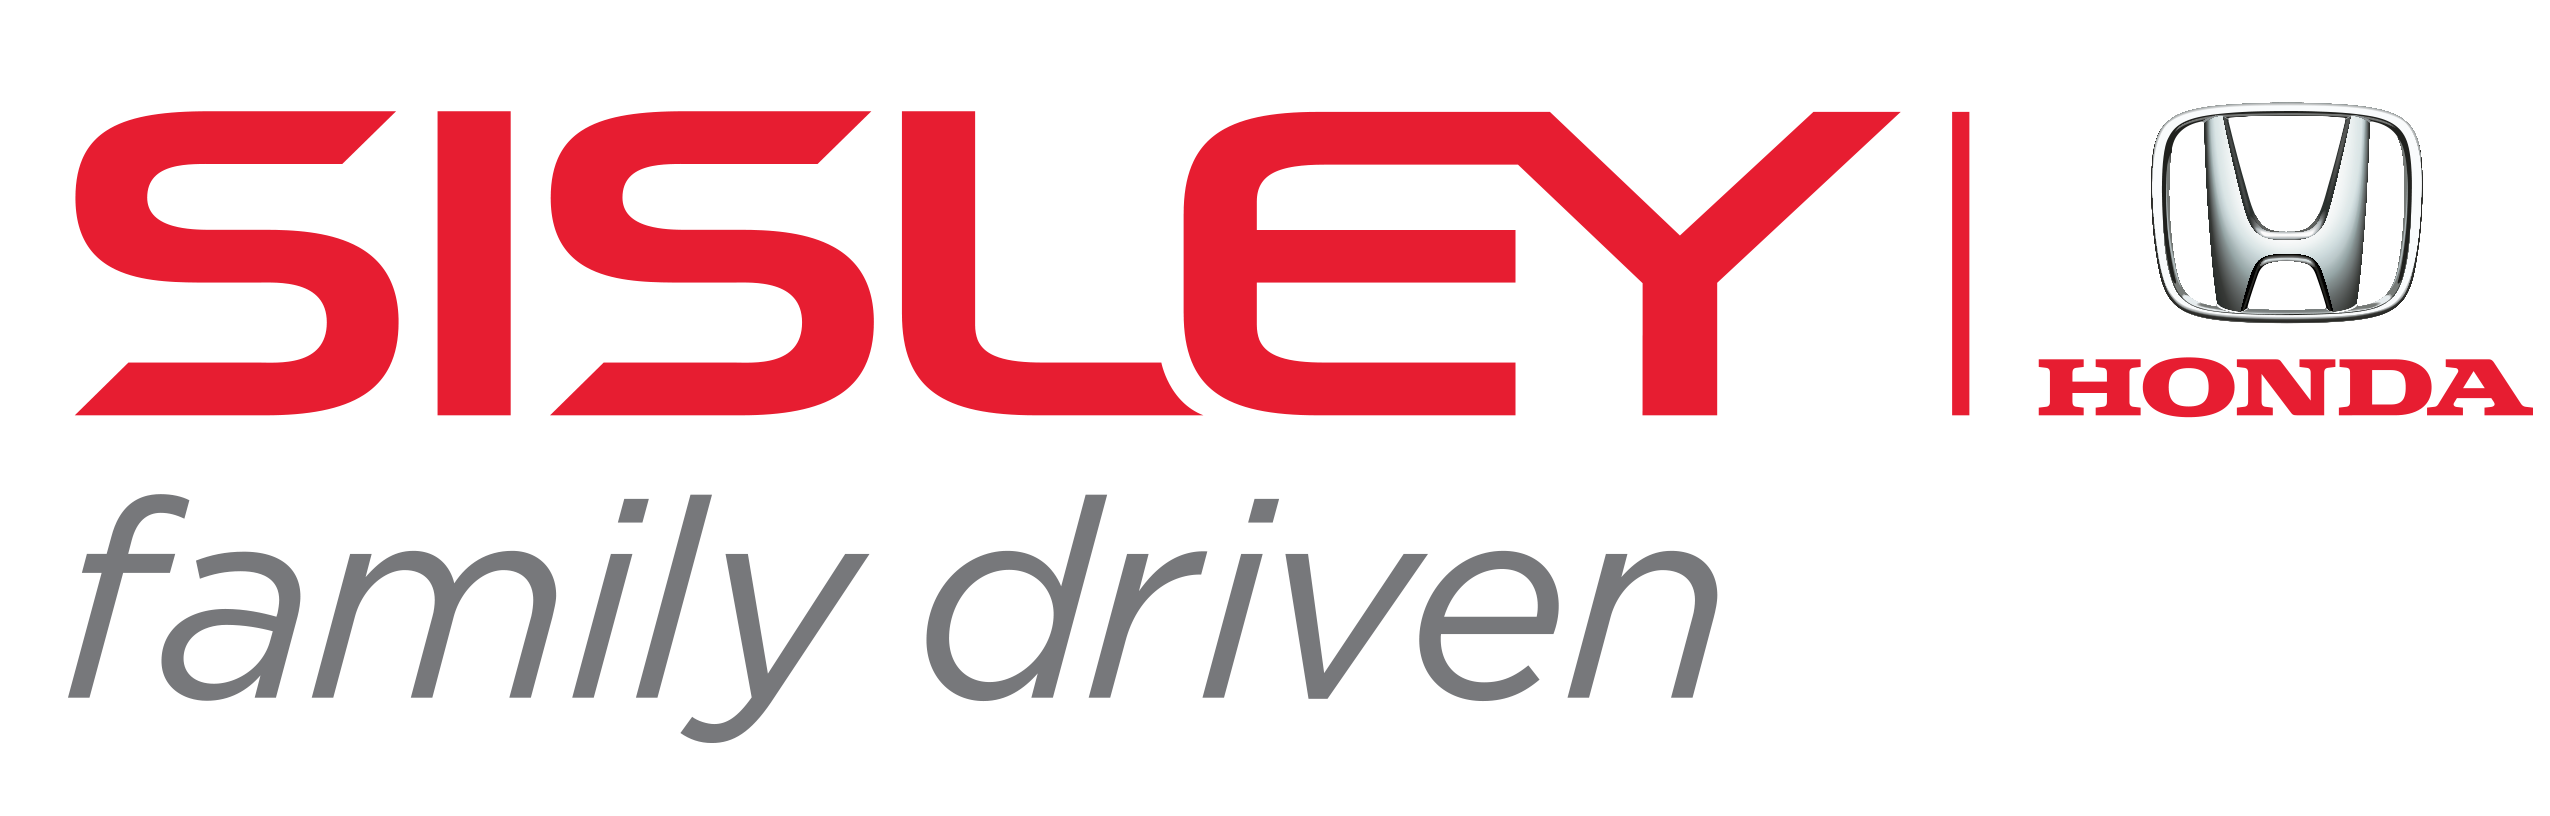 Sisley Honda Comprehensive Vehicle Report For Used Vehicles